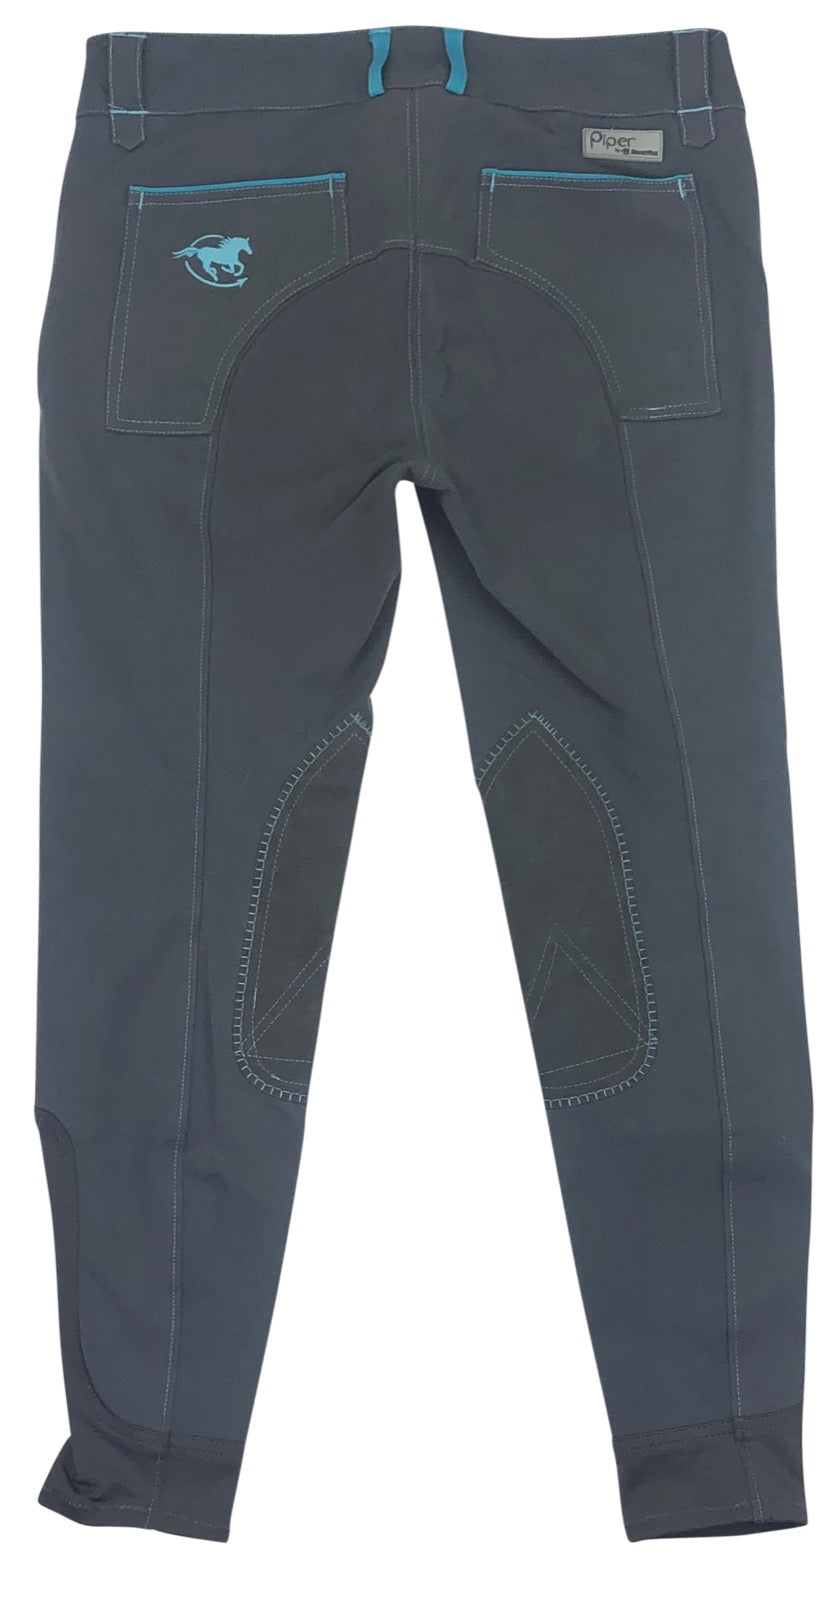 back view of SmartPak Piper Knee Patch Breeches in Grey/Blue